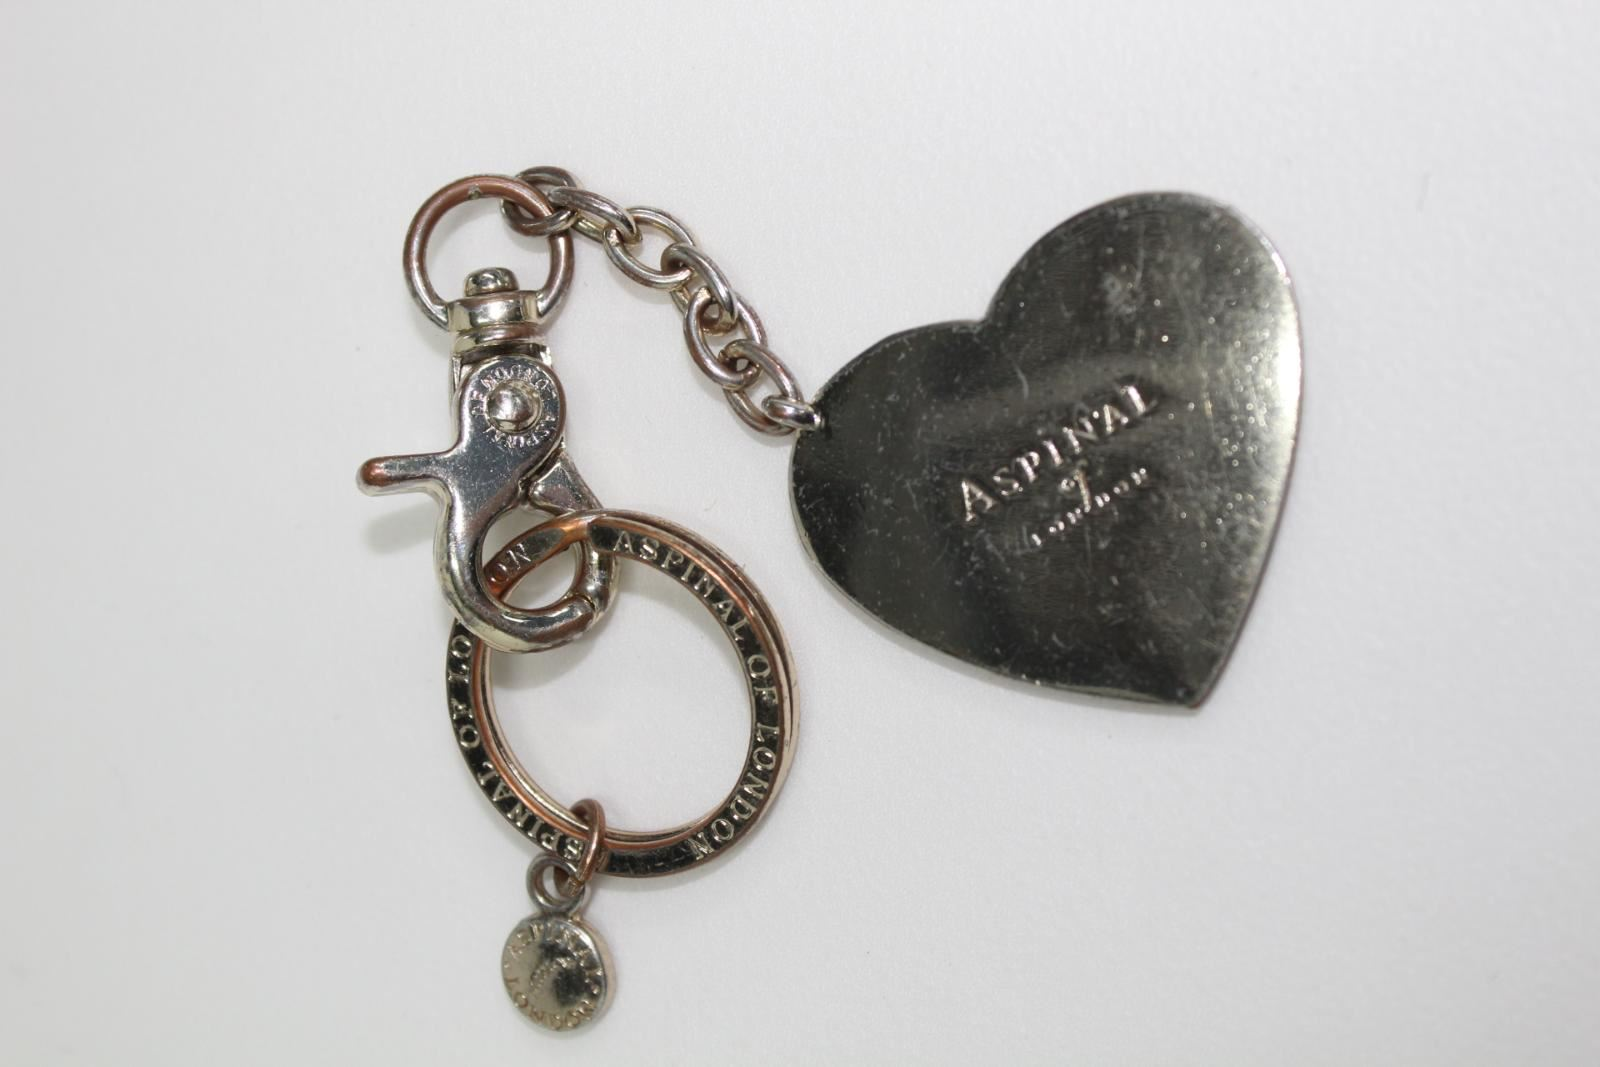 ASPINAL-OF-LONDON-Metal-Luxury-Gold-Tone-2-034-Heart-Clasp-Chain-Pendant-Keyring